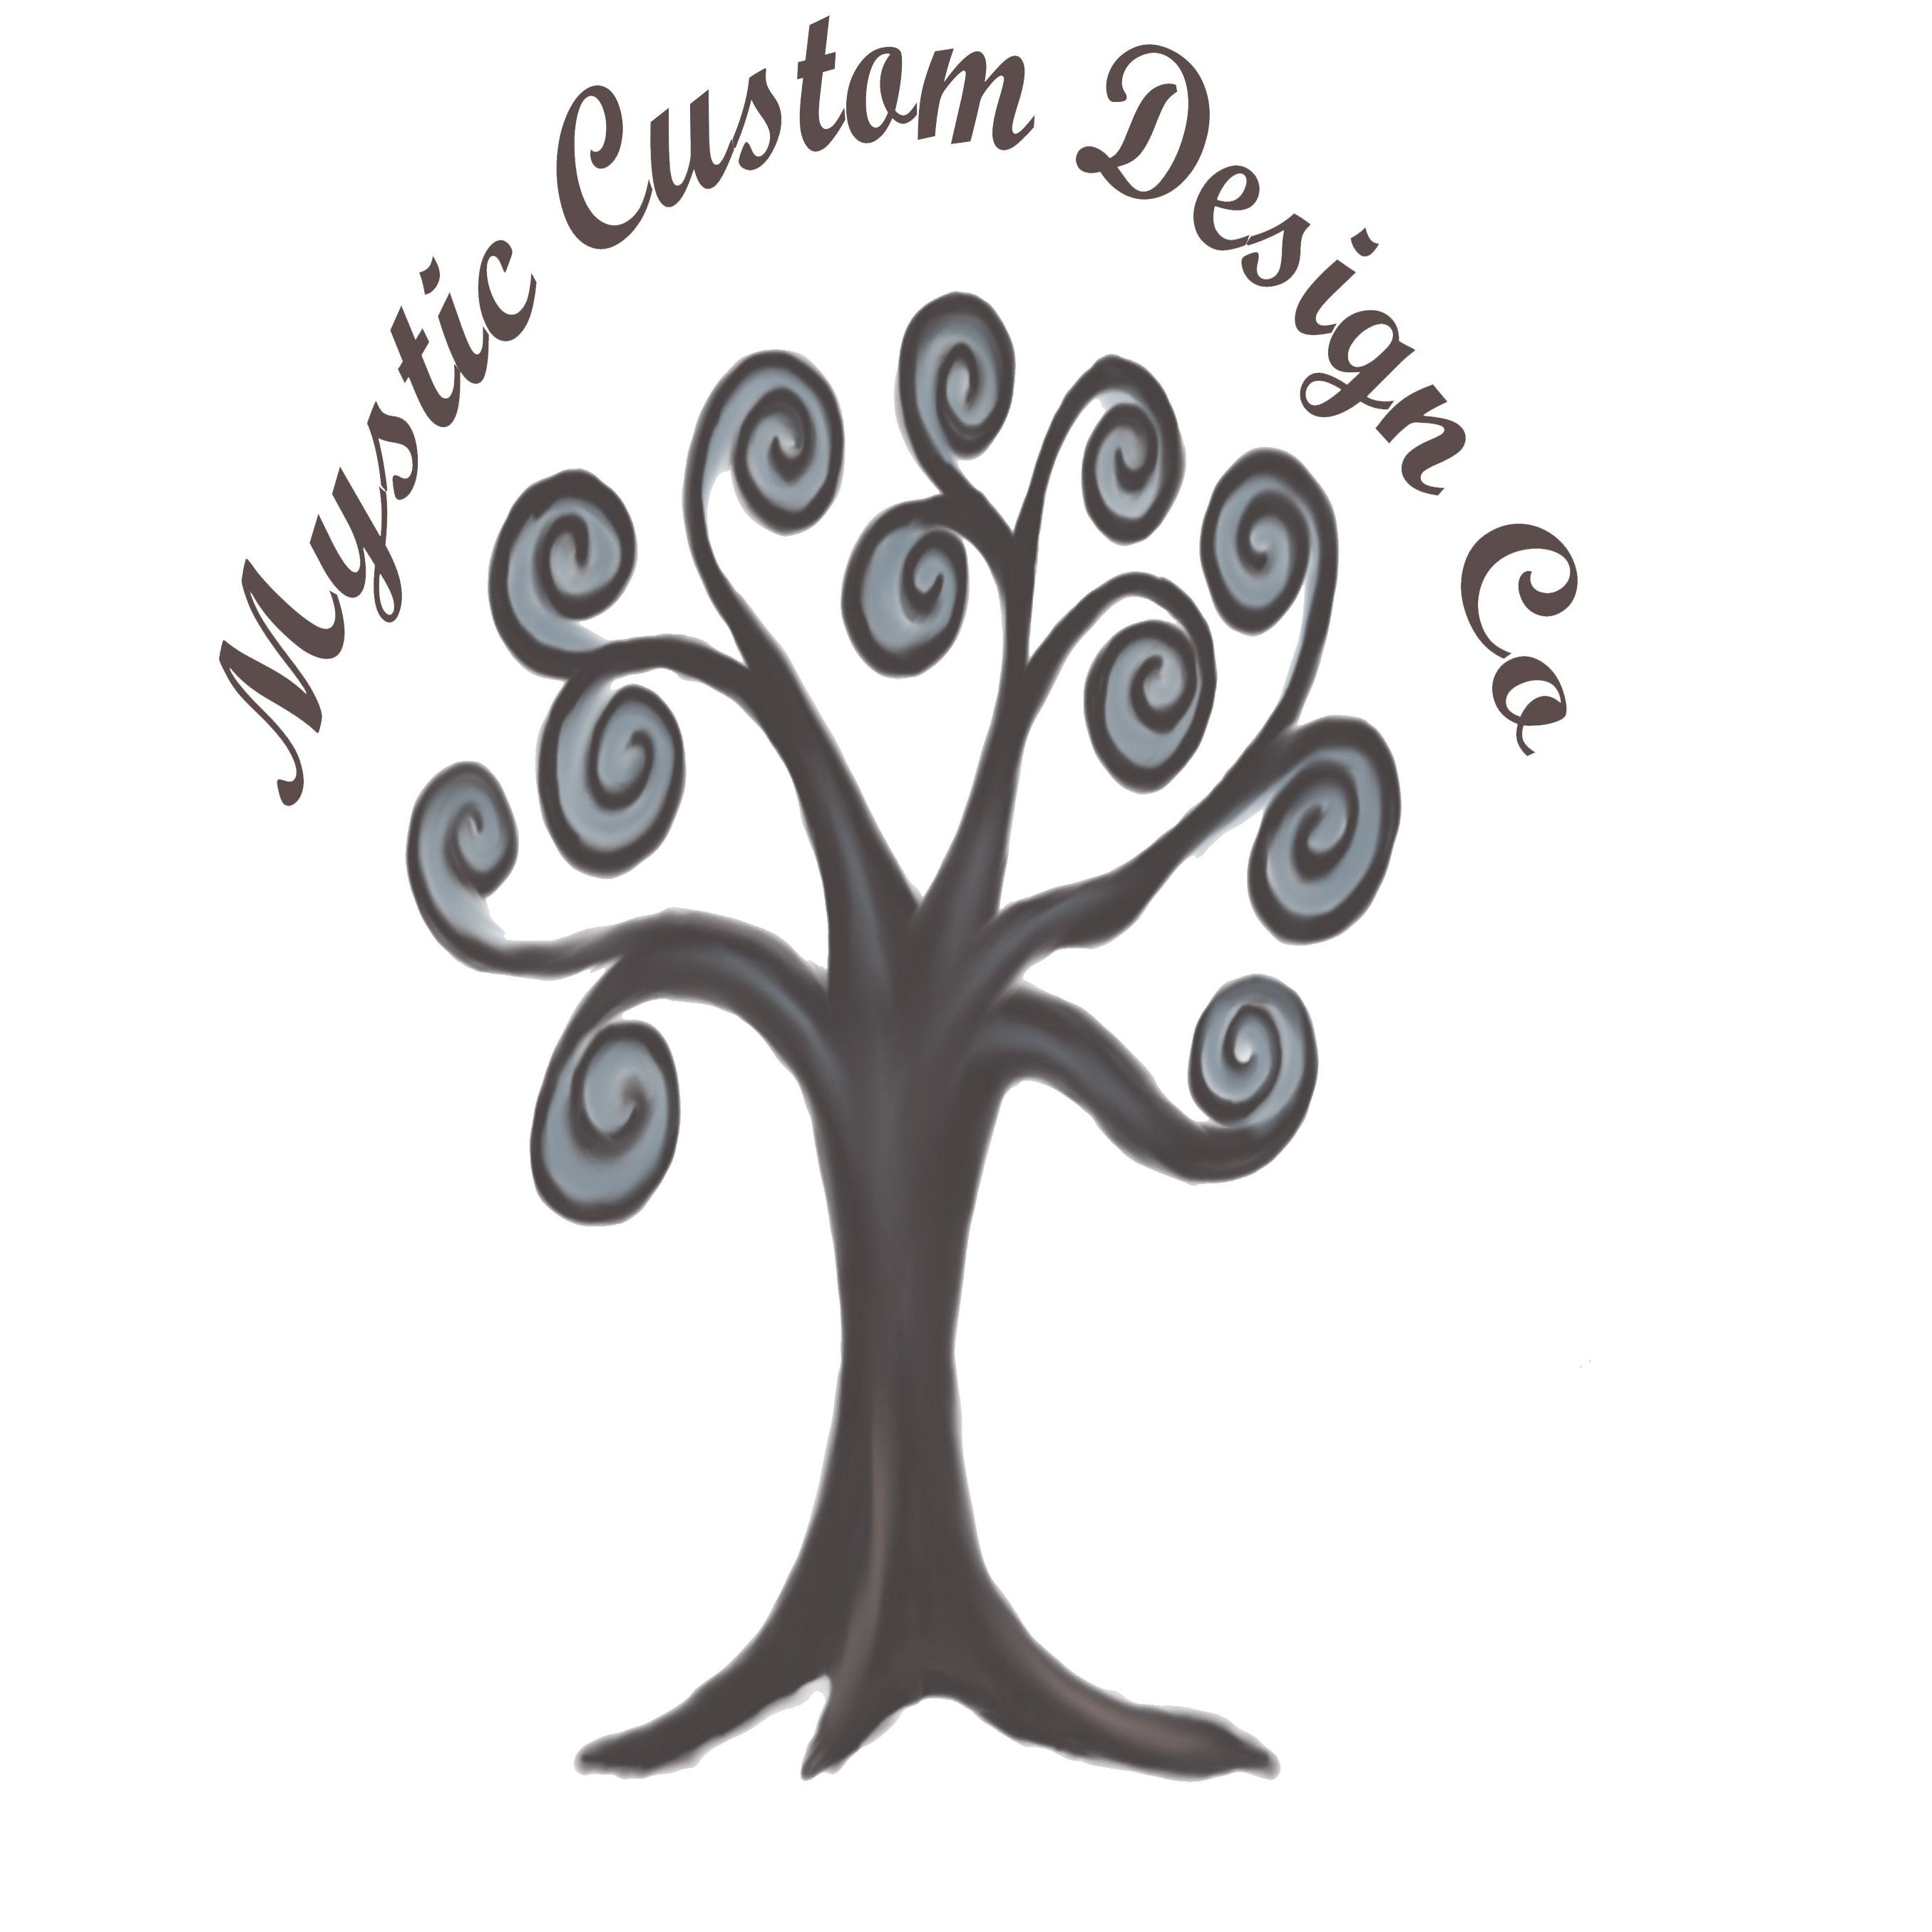 mysticcustomdesignco on etsy